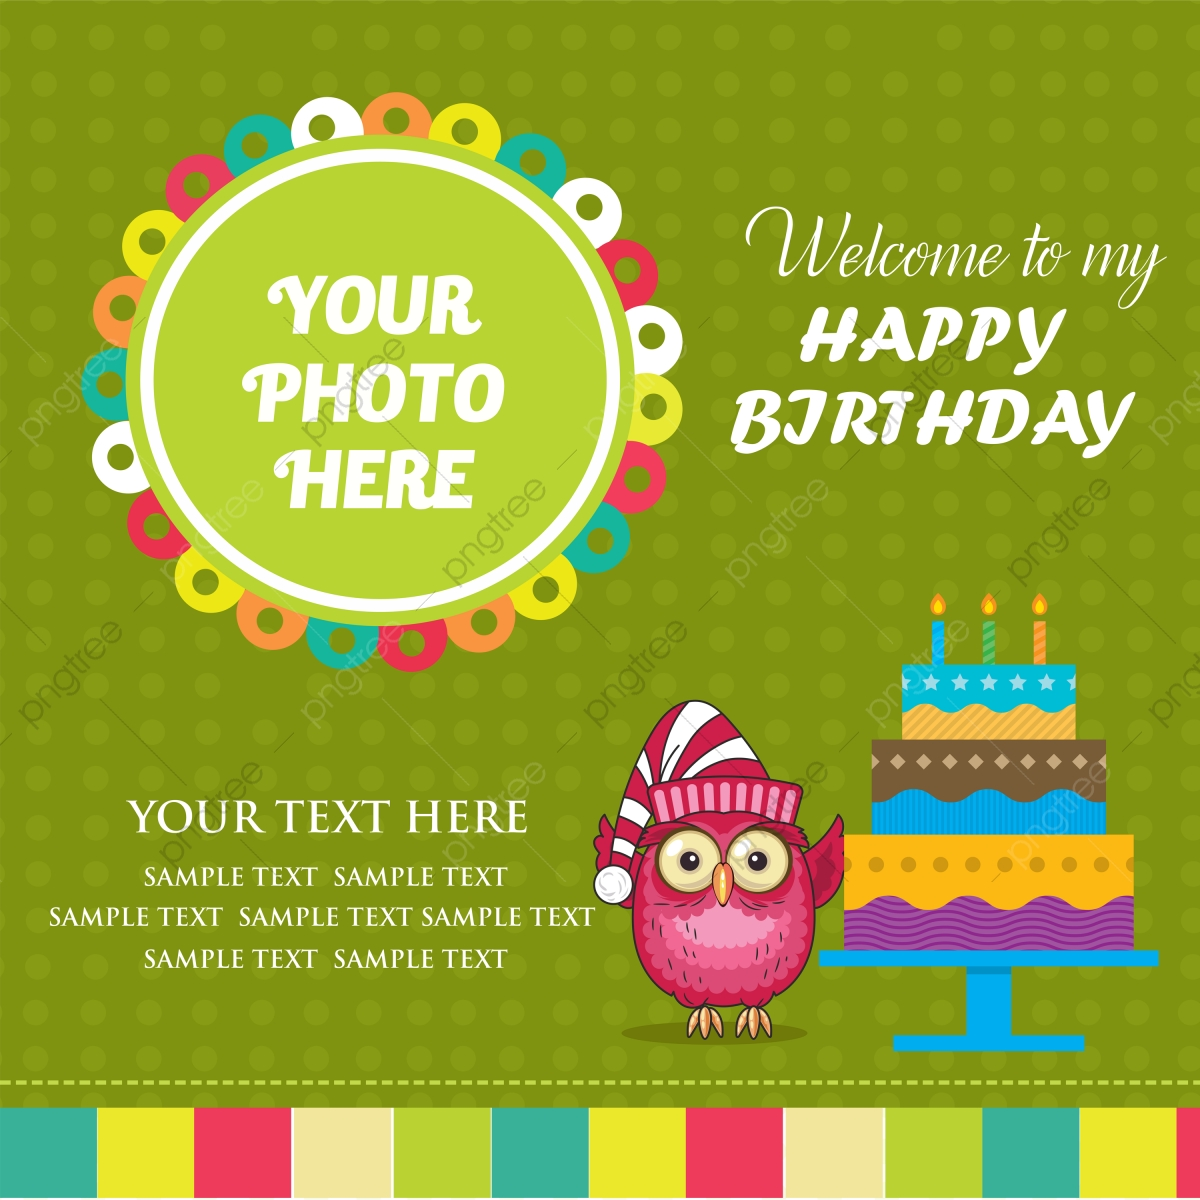 https pngtree com freepng birthday cute green invitation card design 3729773 html